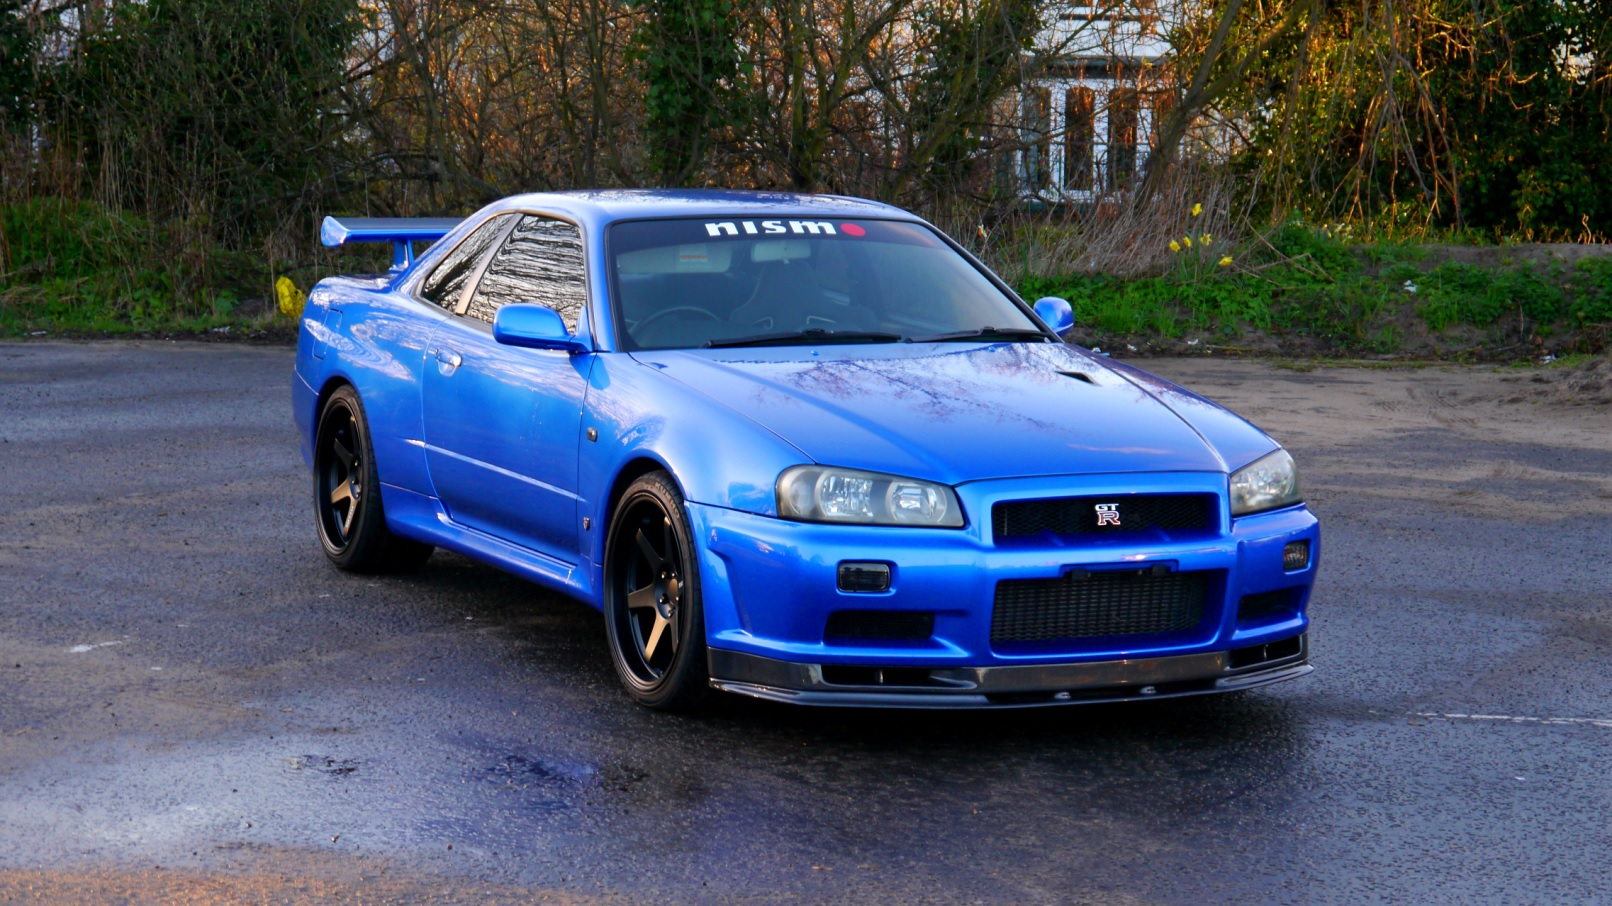 Nissan Gtr Interior >> 1999 Nissan Skyline R34 GTR 6 Speed Manual - JM-Imports